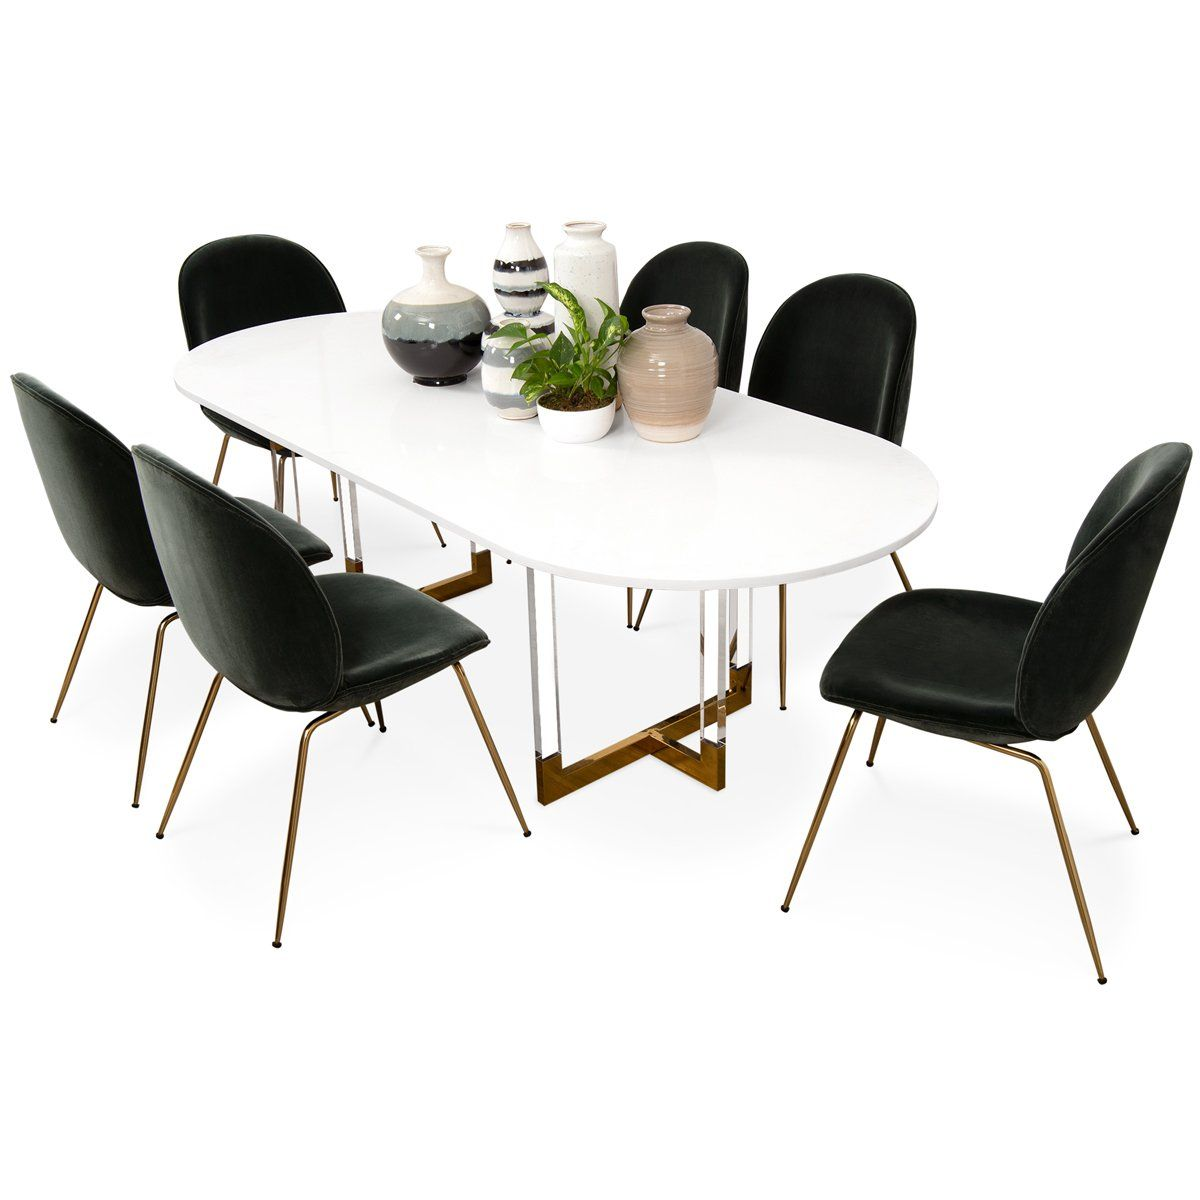 Trousdale 2 Oval Dining Table In Quartz Oval Table Dining Dining Table Oval Dining Room Table